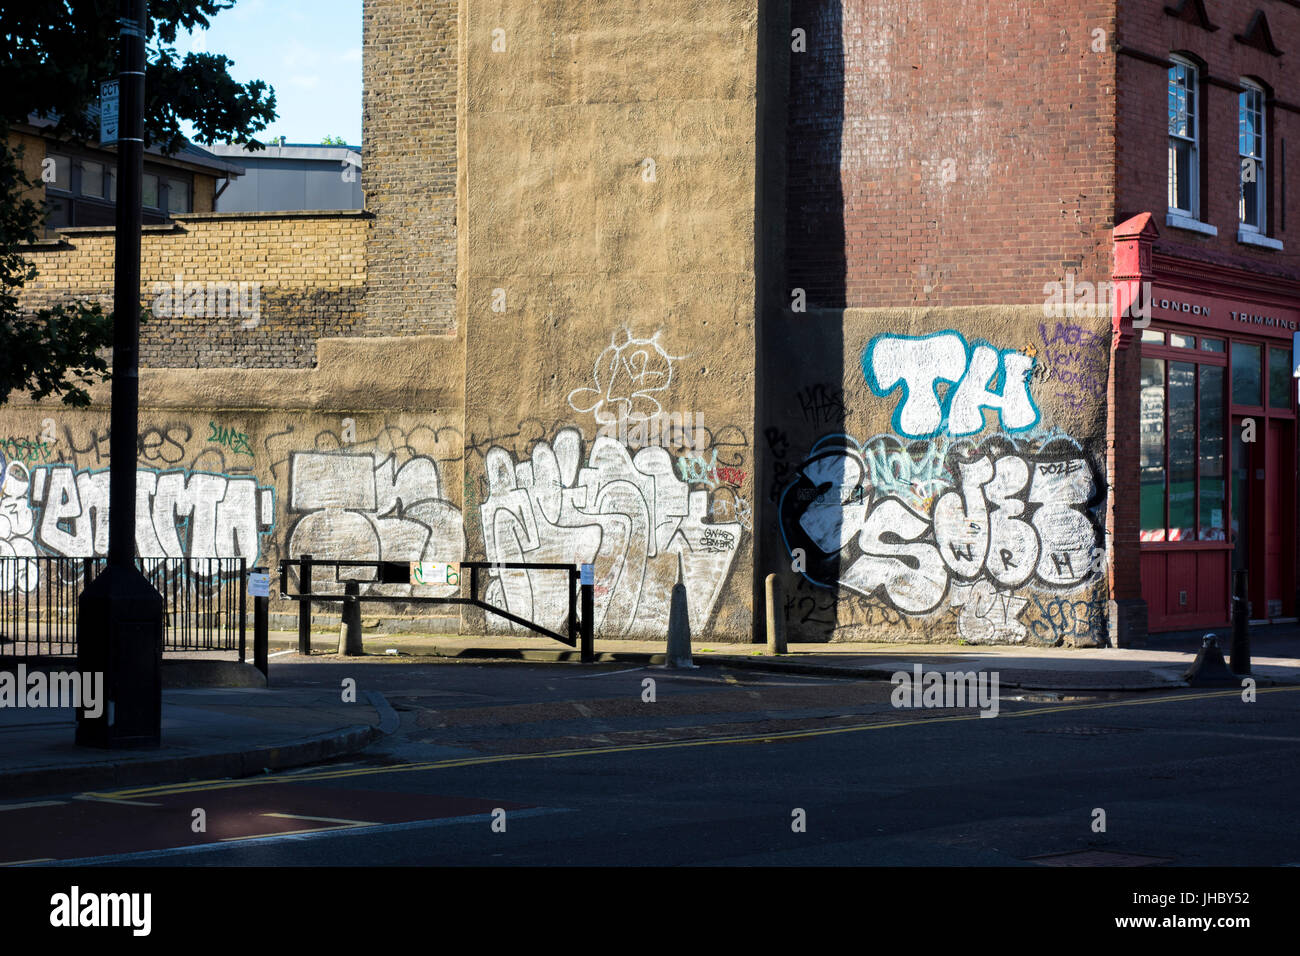 Graffiti on the side of a building, Cambridge Heath Road, Bethnal Green, Tower Hamlets, East London, UK - Stock Image